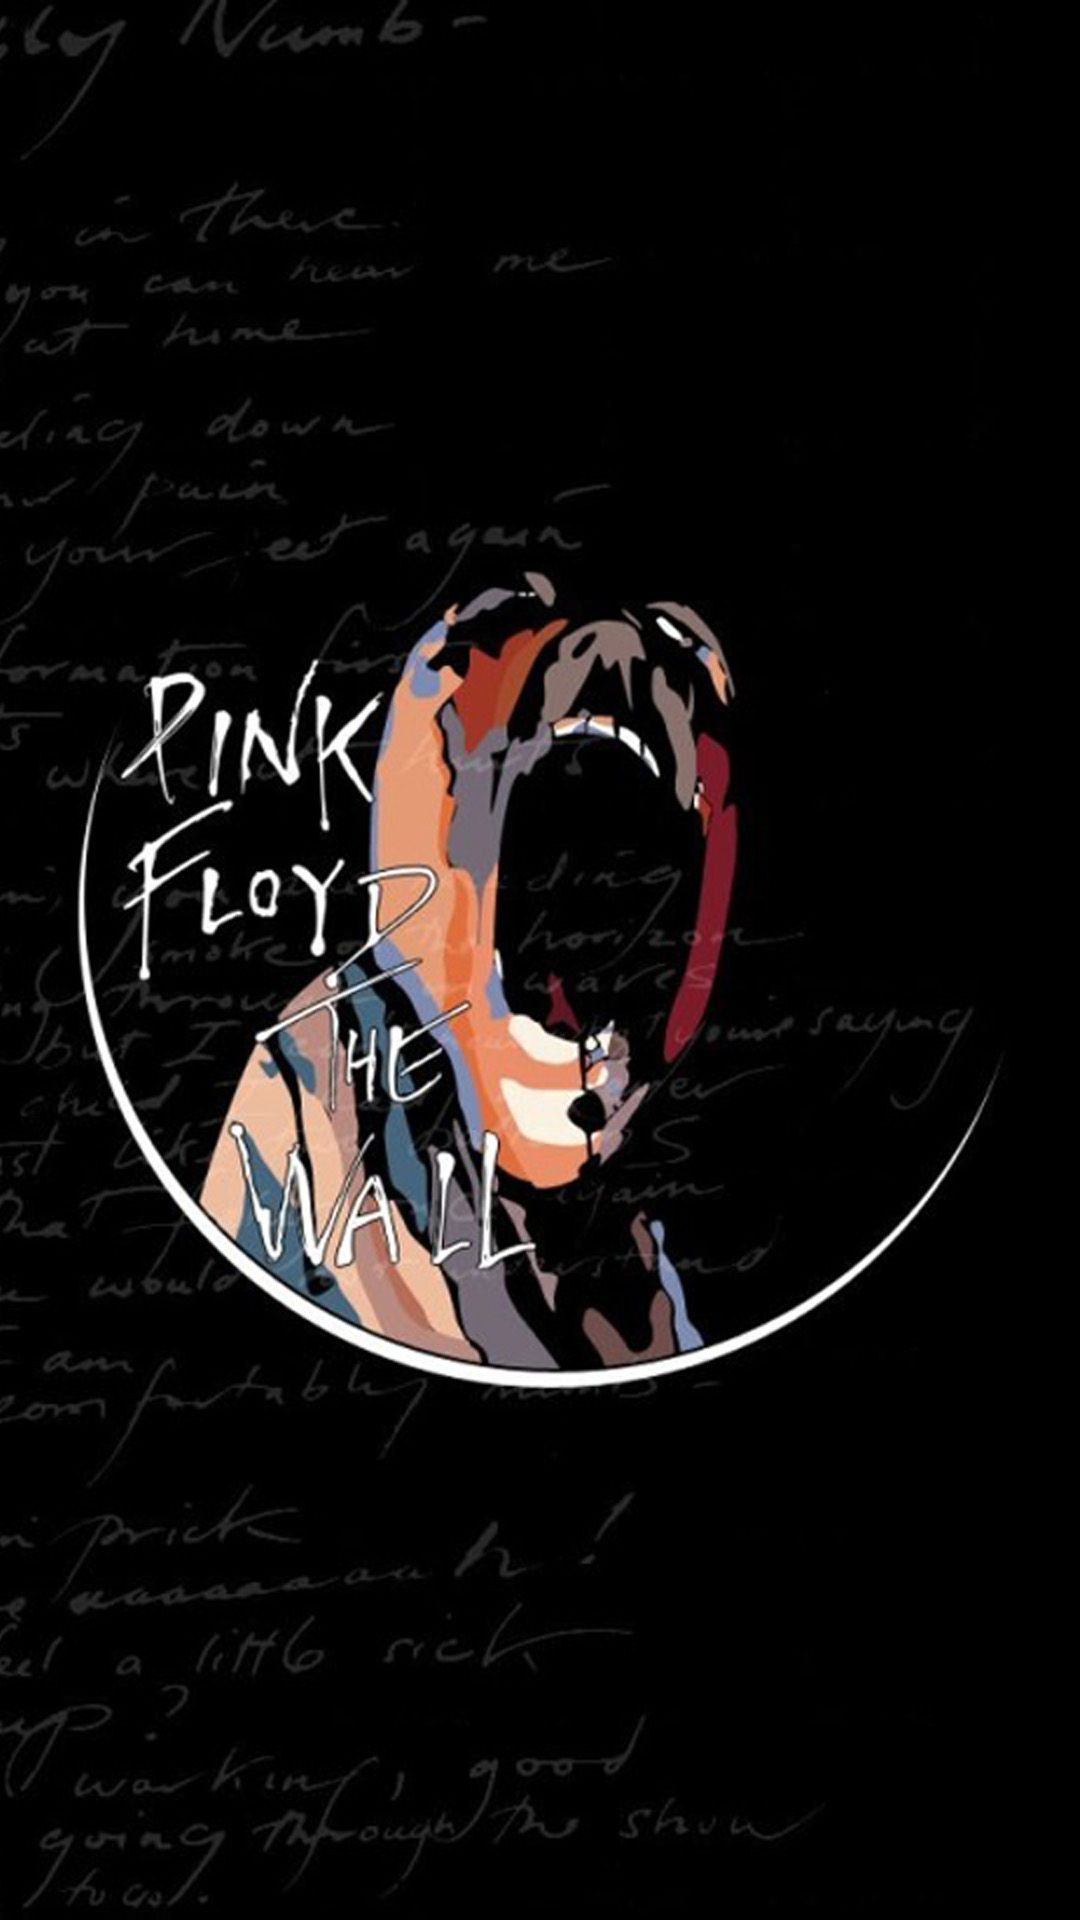 Http Wallpaperformobile Org 16200 Pink Floyd Android Wallpaper Html Pink Floyd Android Wallpaper Pink Floyd Wallpaper Pink Floyd Poster Pink Floyd Art